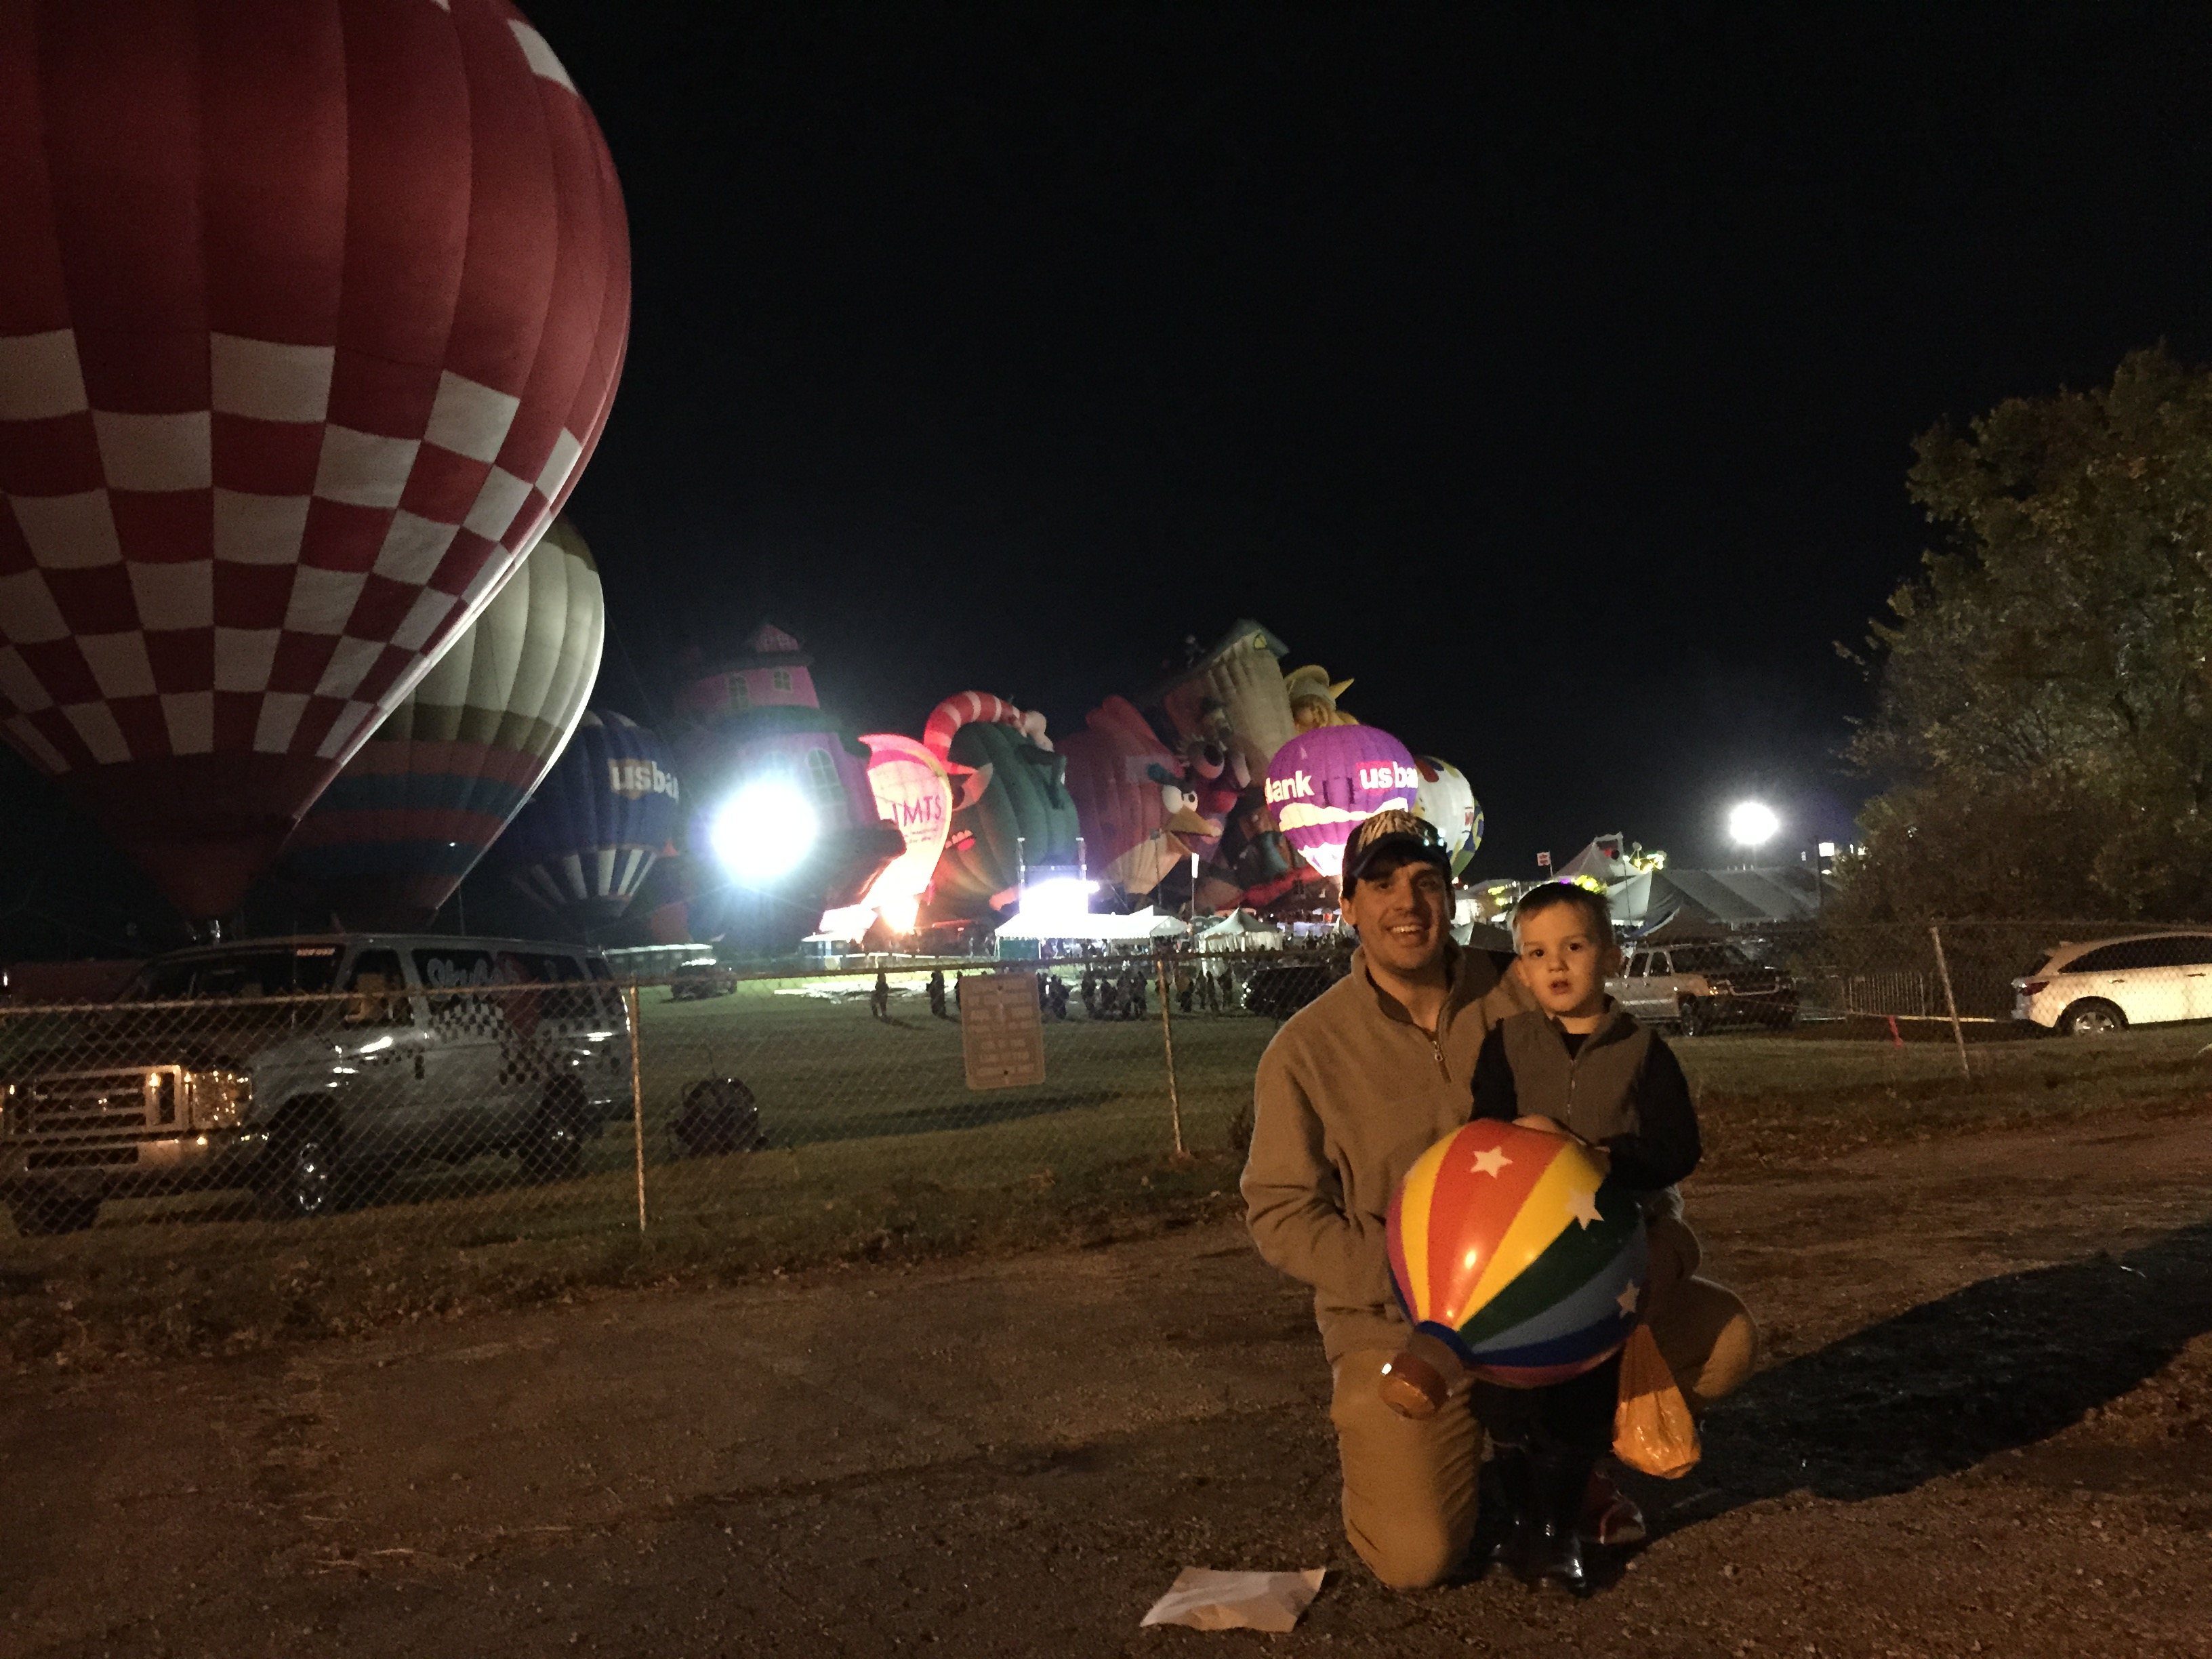 The Russos check out the Midwest Balloon Festival in their new home.